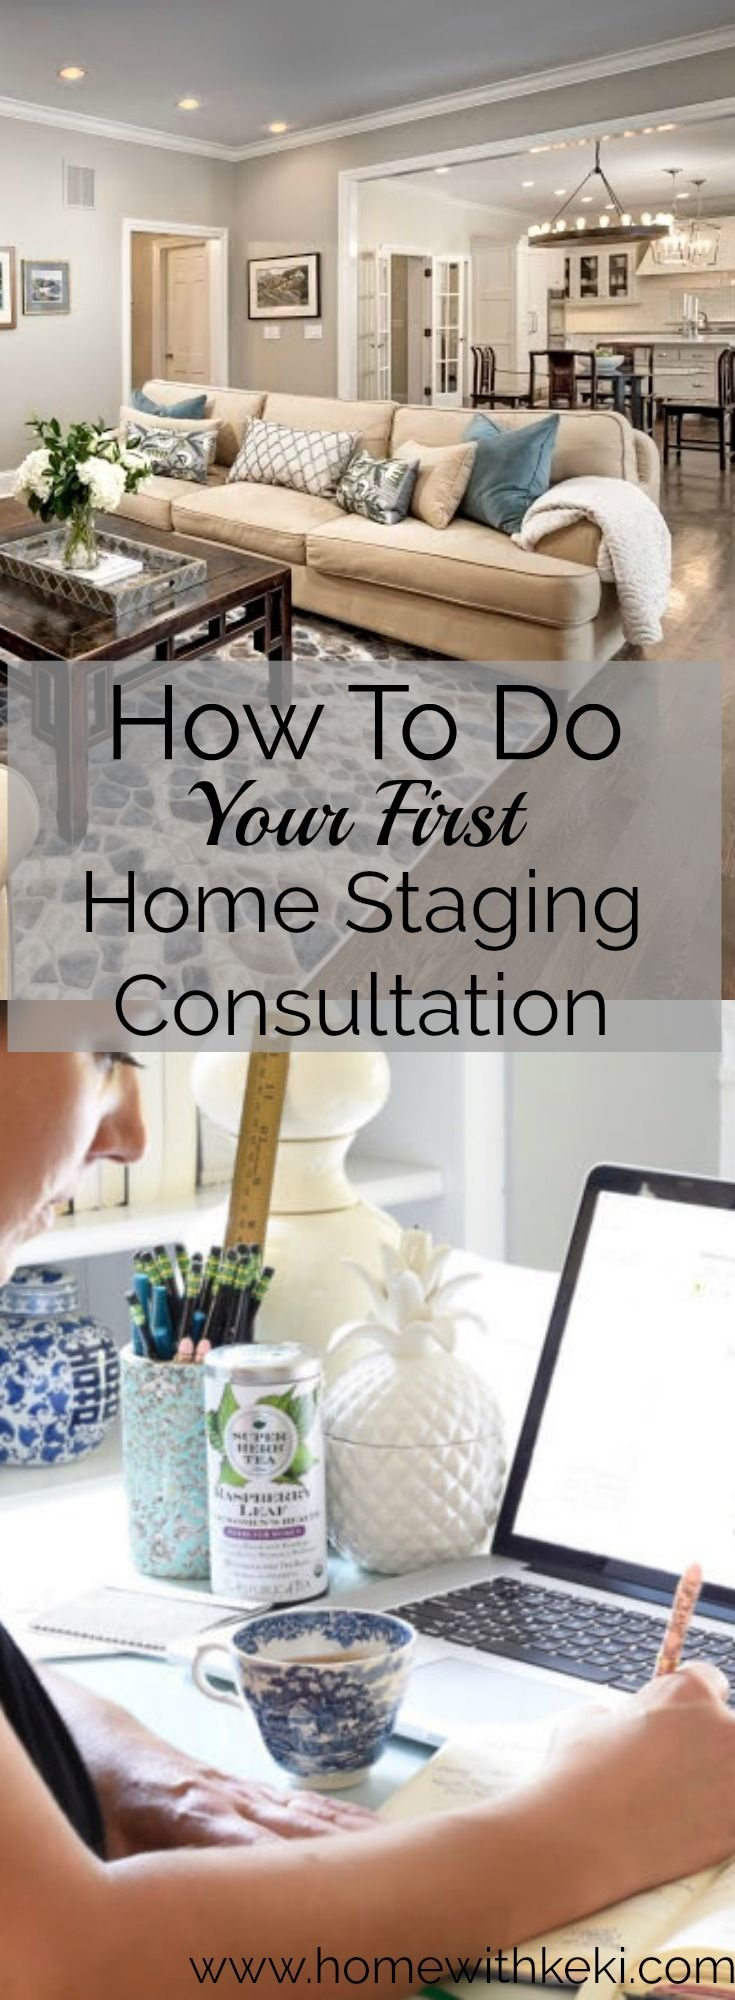 Sharing my top 5 tips on how to conduct a home staging consultation and what you need to bring with you. for more go to www.homewithkeki.com #homestaging #stagedhomes